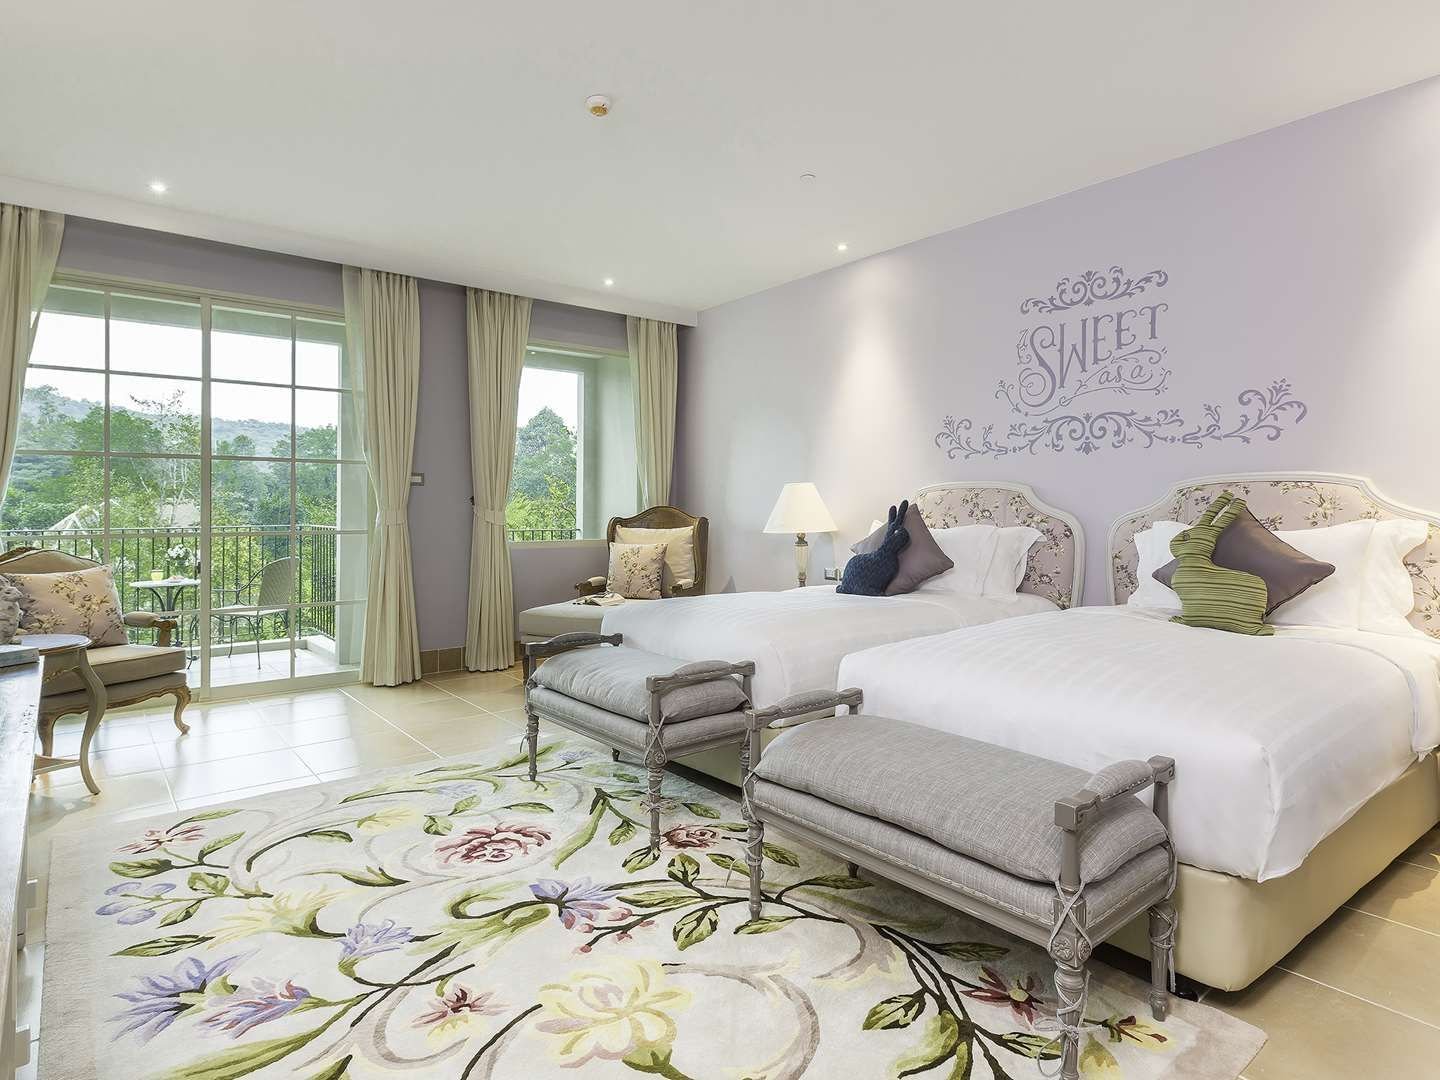 Deluxe with Afternoon Tea set at U Hotels and Resorts